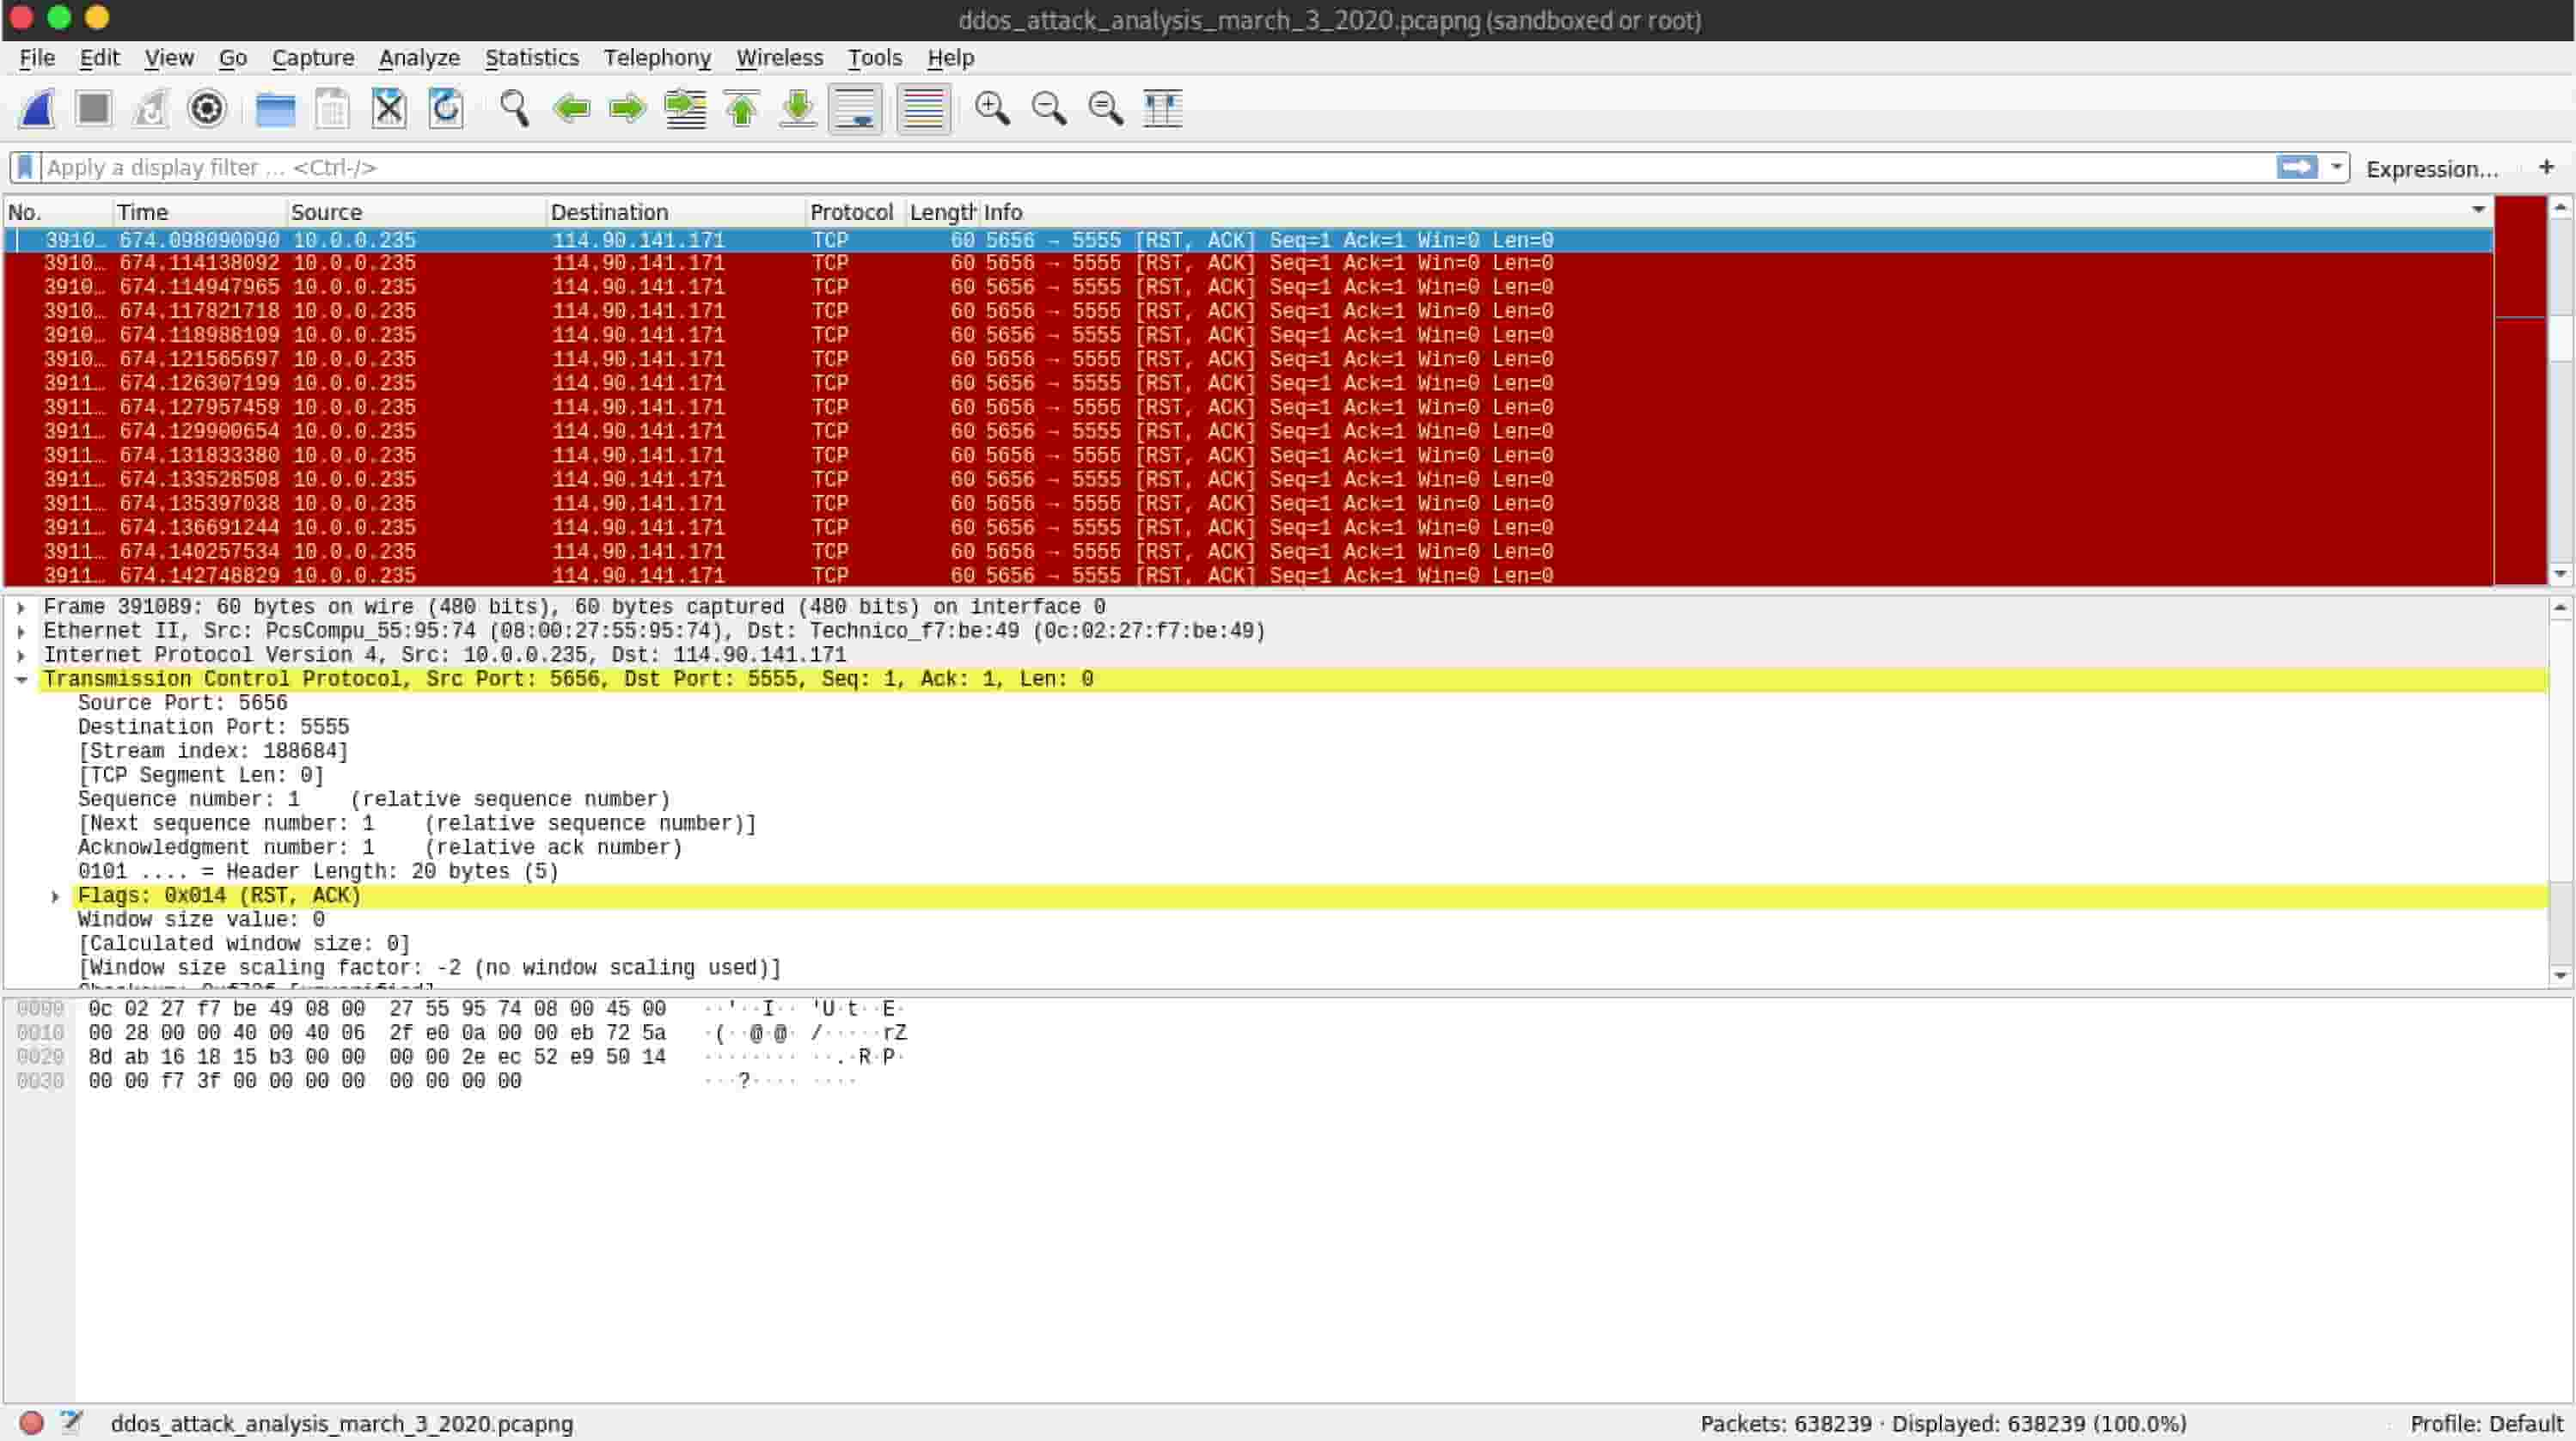 DDoS packets on Wireshark